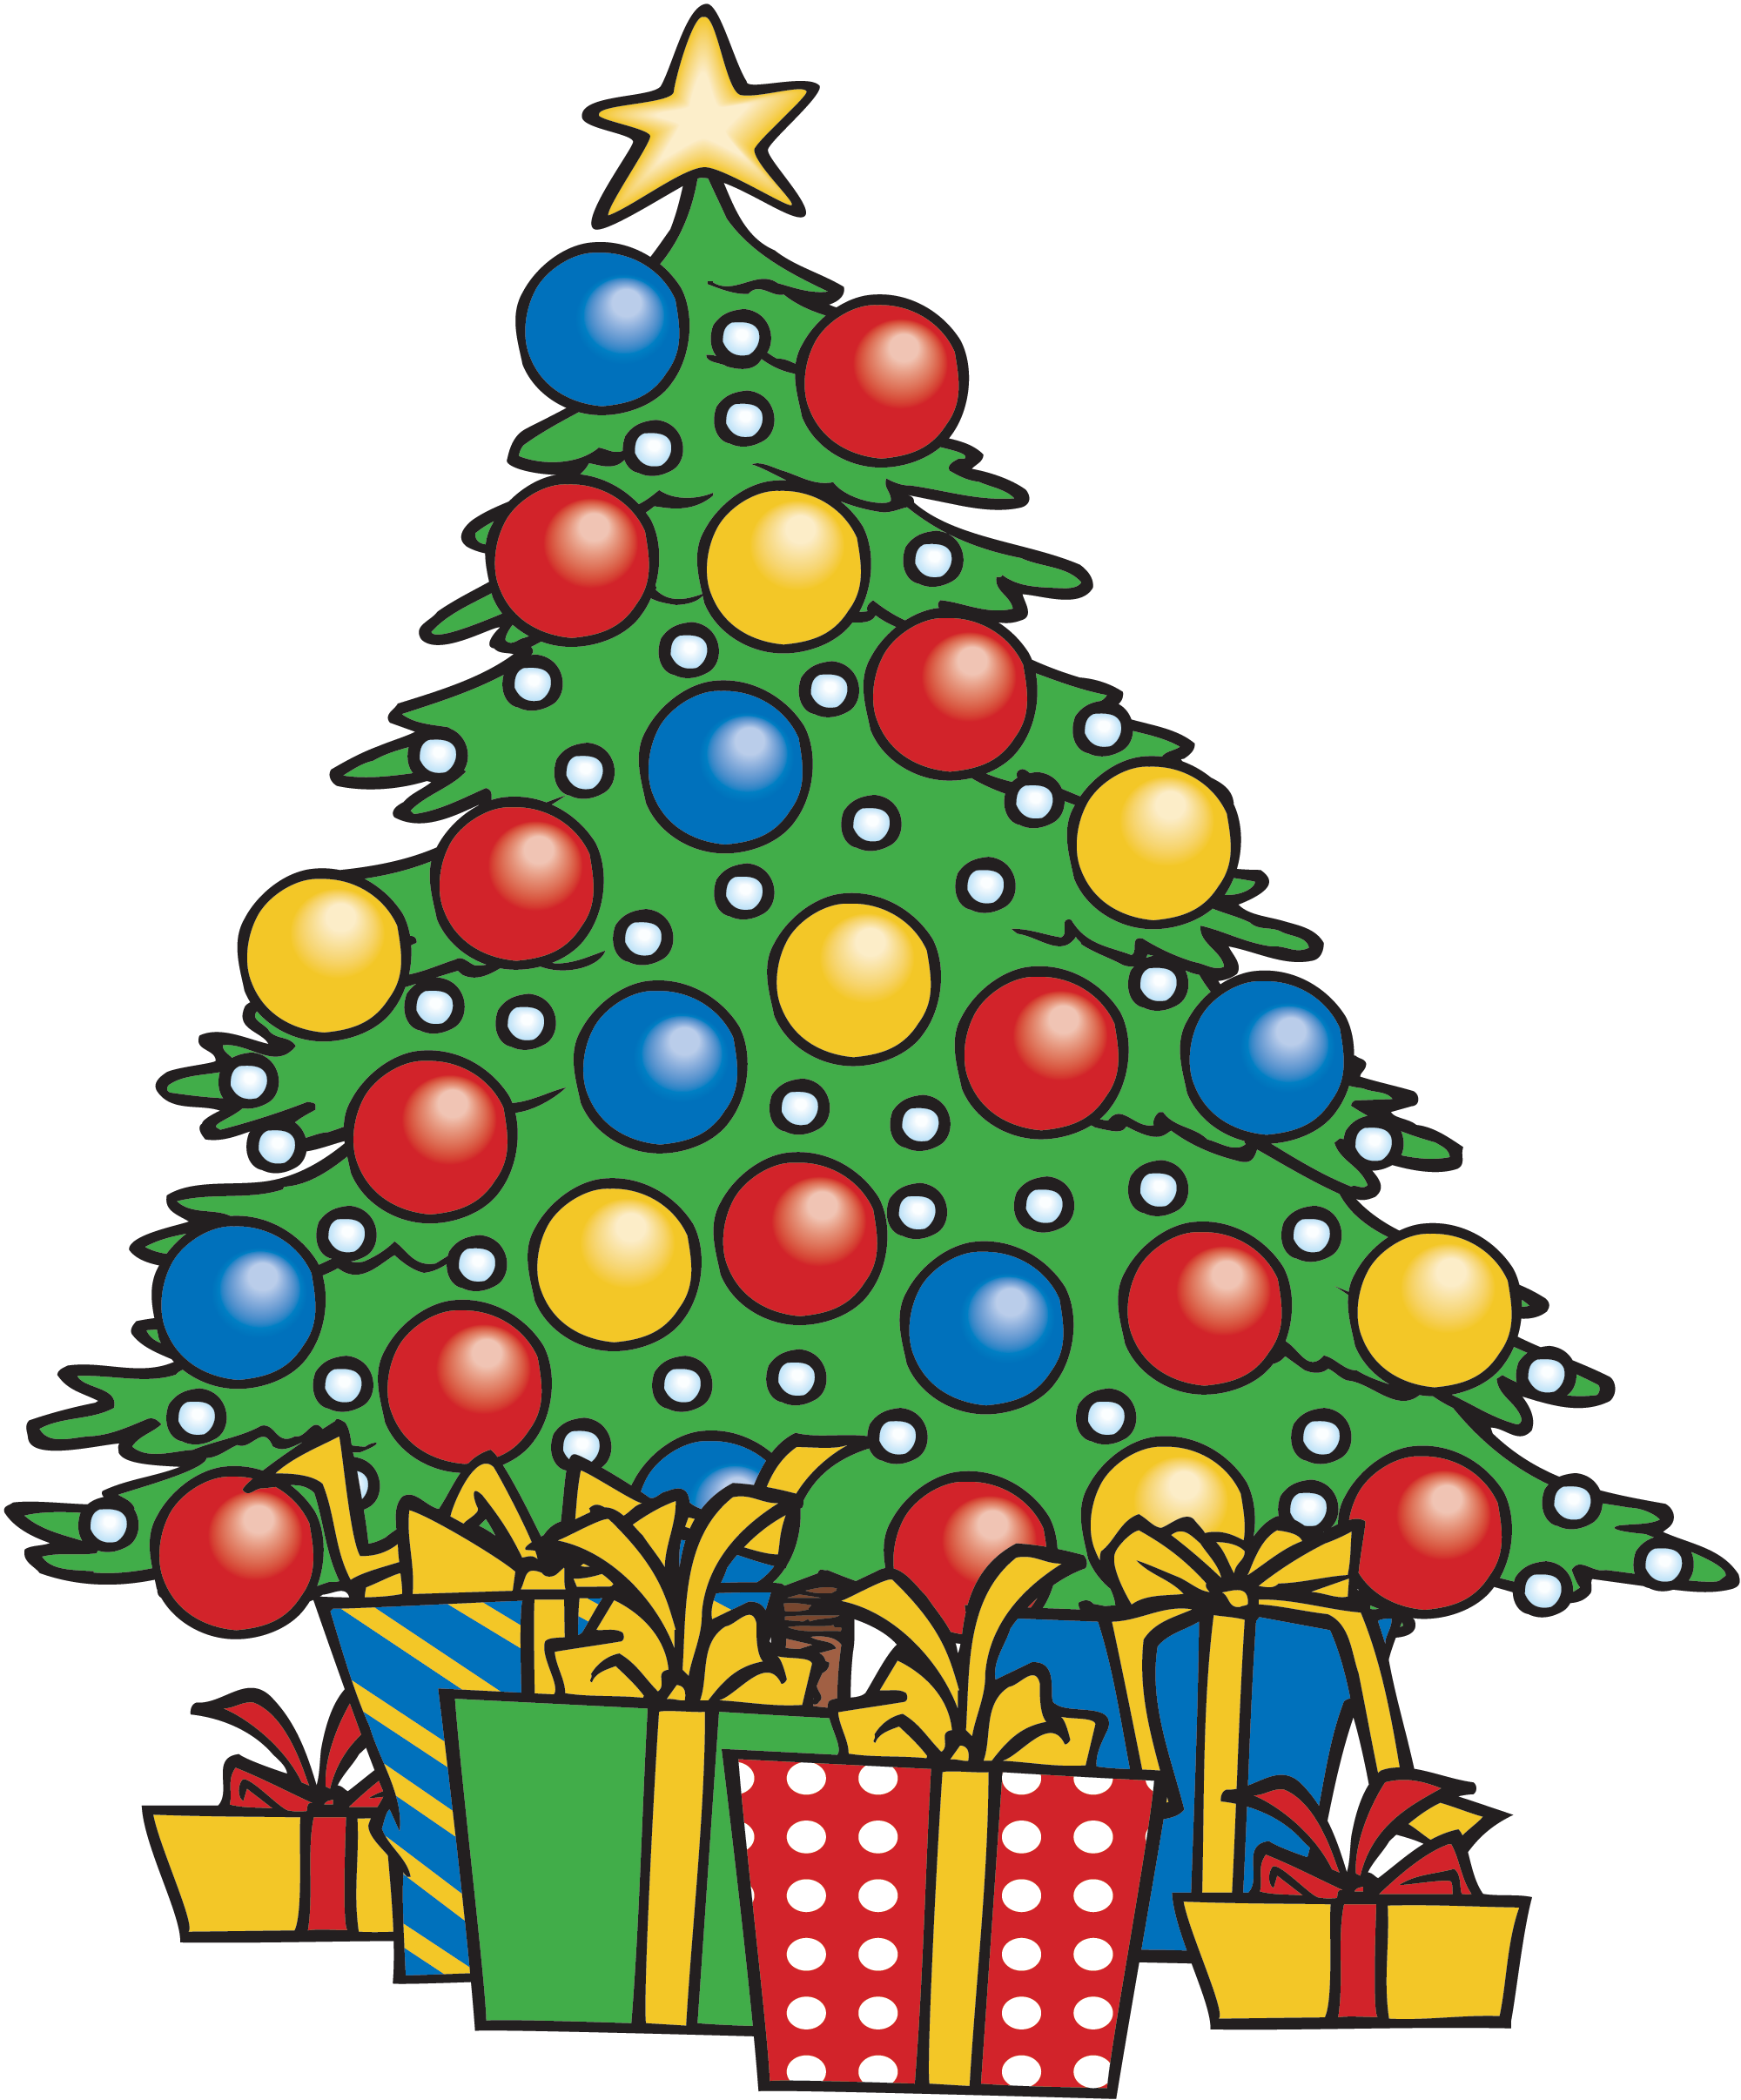 Presents Under The Christmas Tree: Merry Christmas To One And All